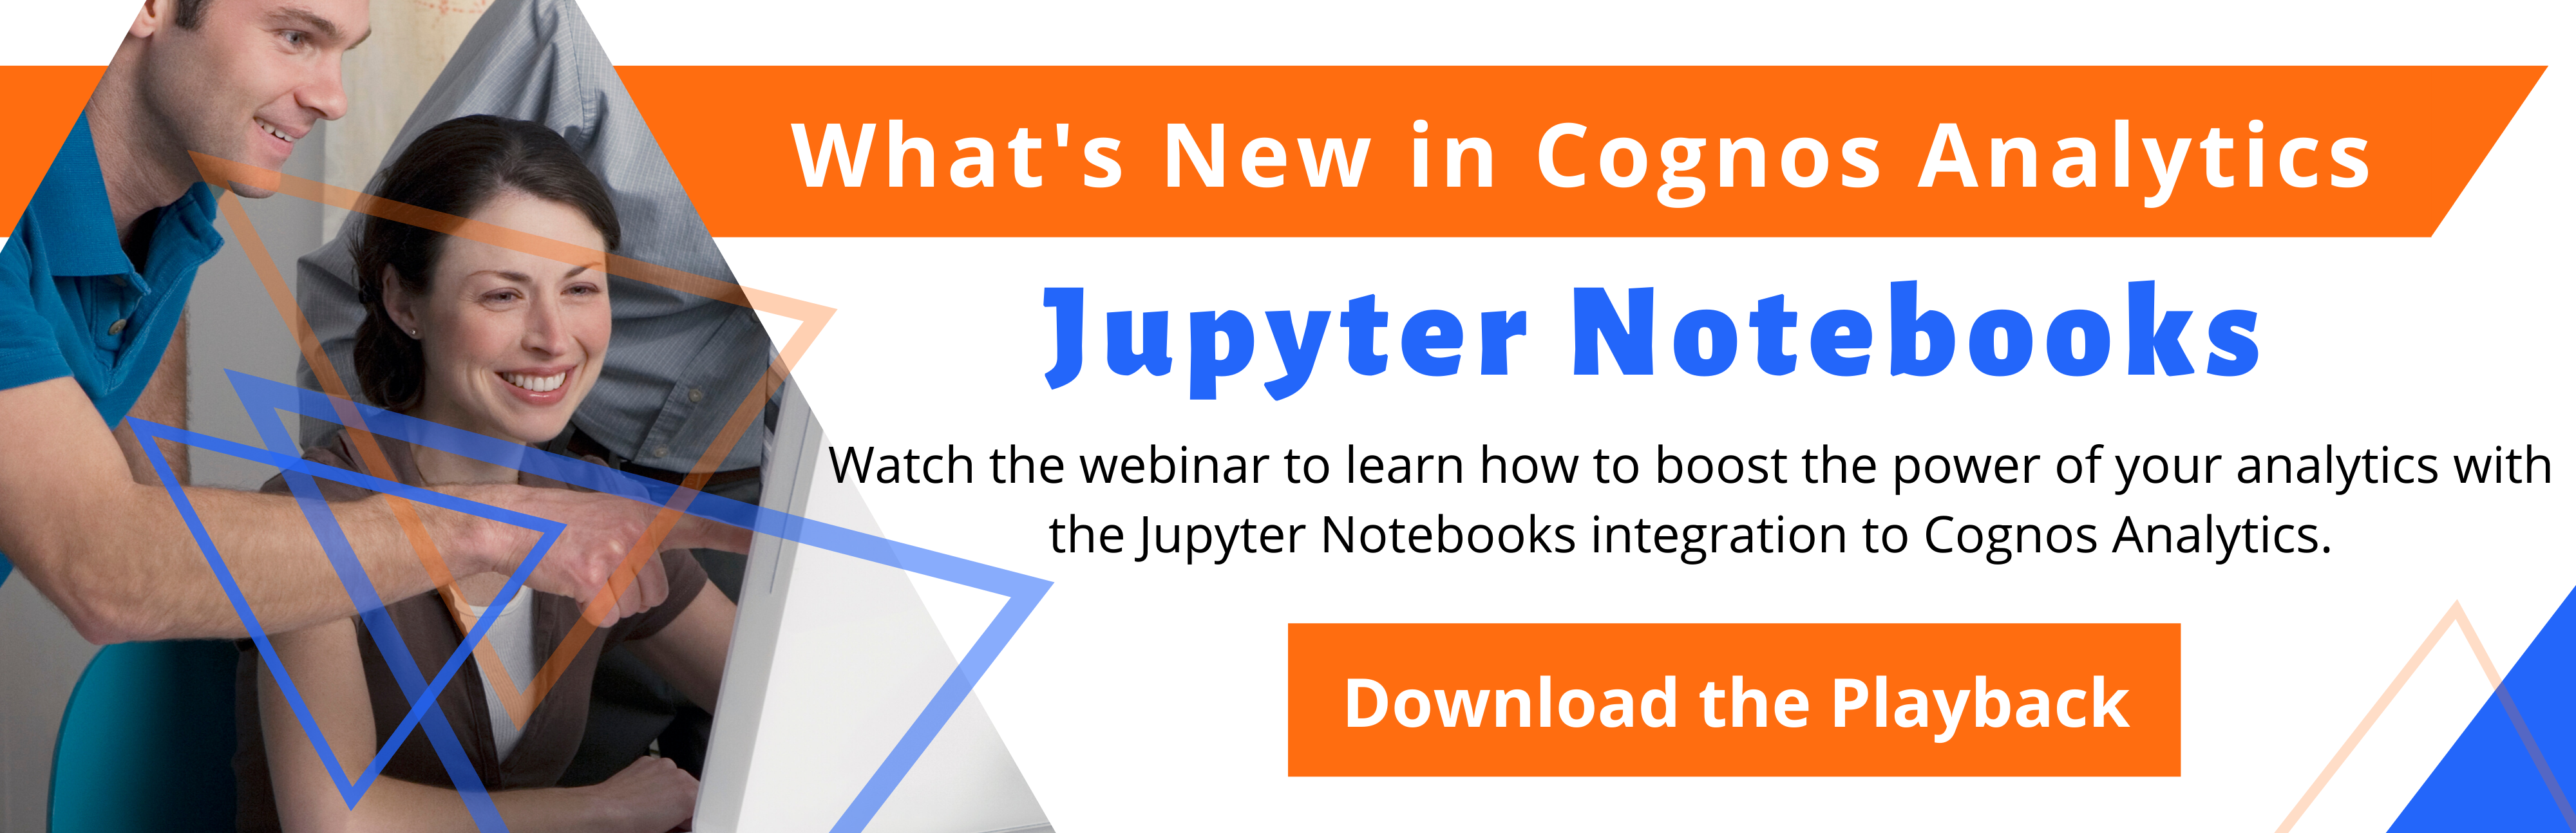 Jupyter Notebooks integration to Cognos Webinar